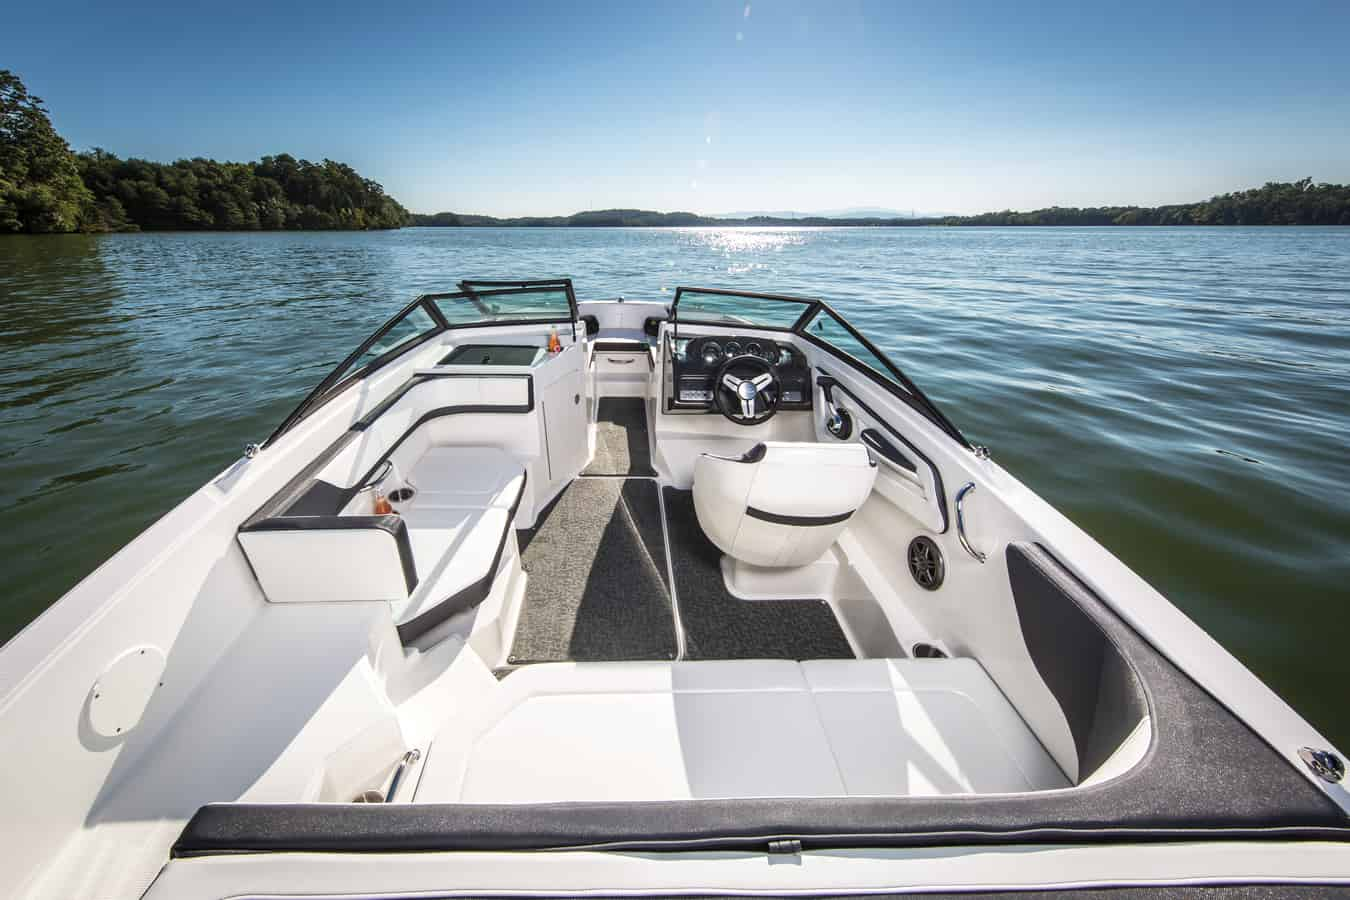 NEW 2018 Sea Ray SPX 190 - Hutchinson's Boat Works